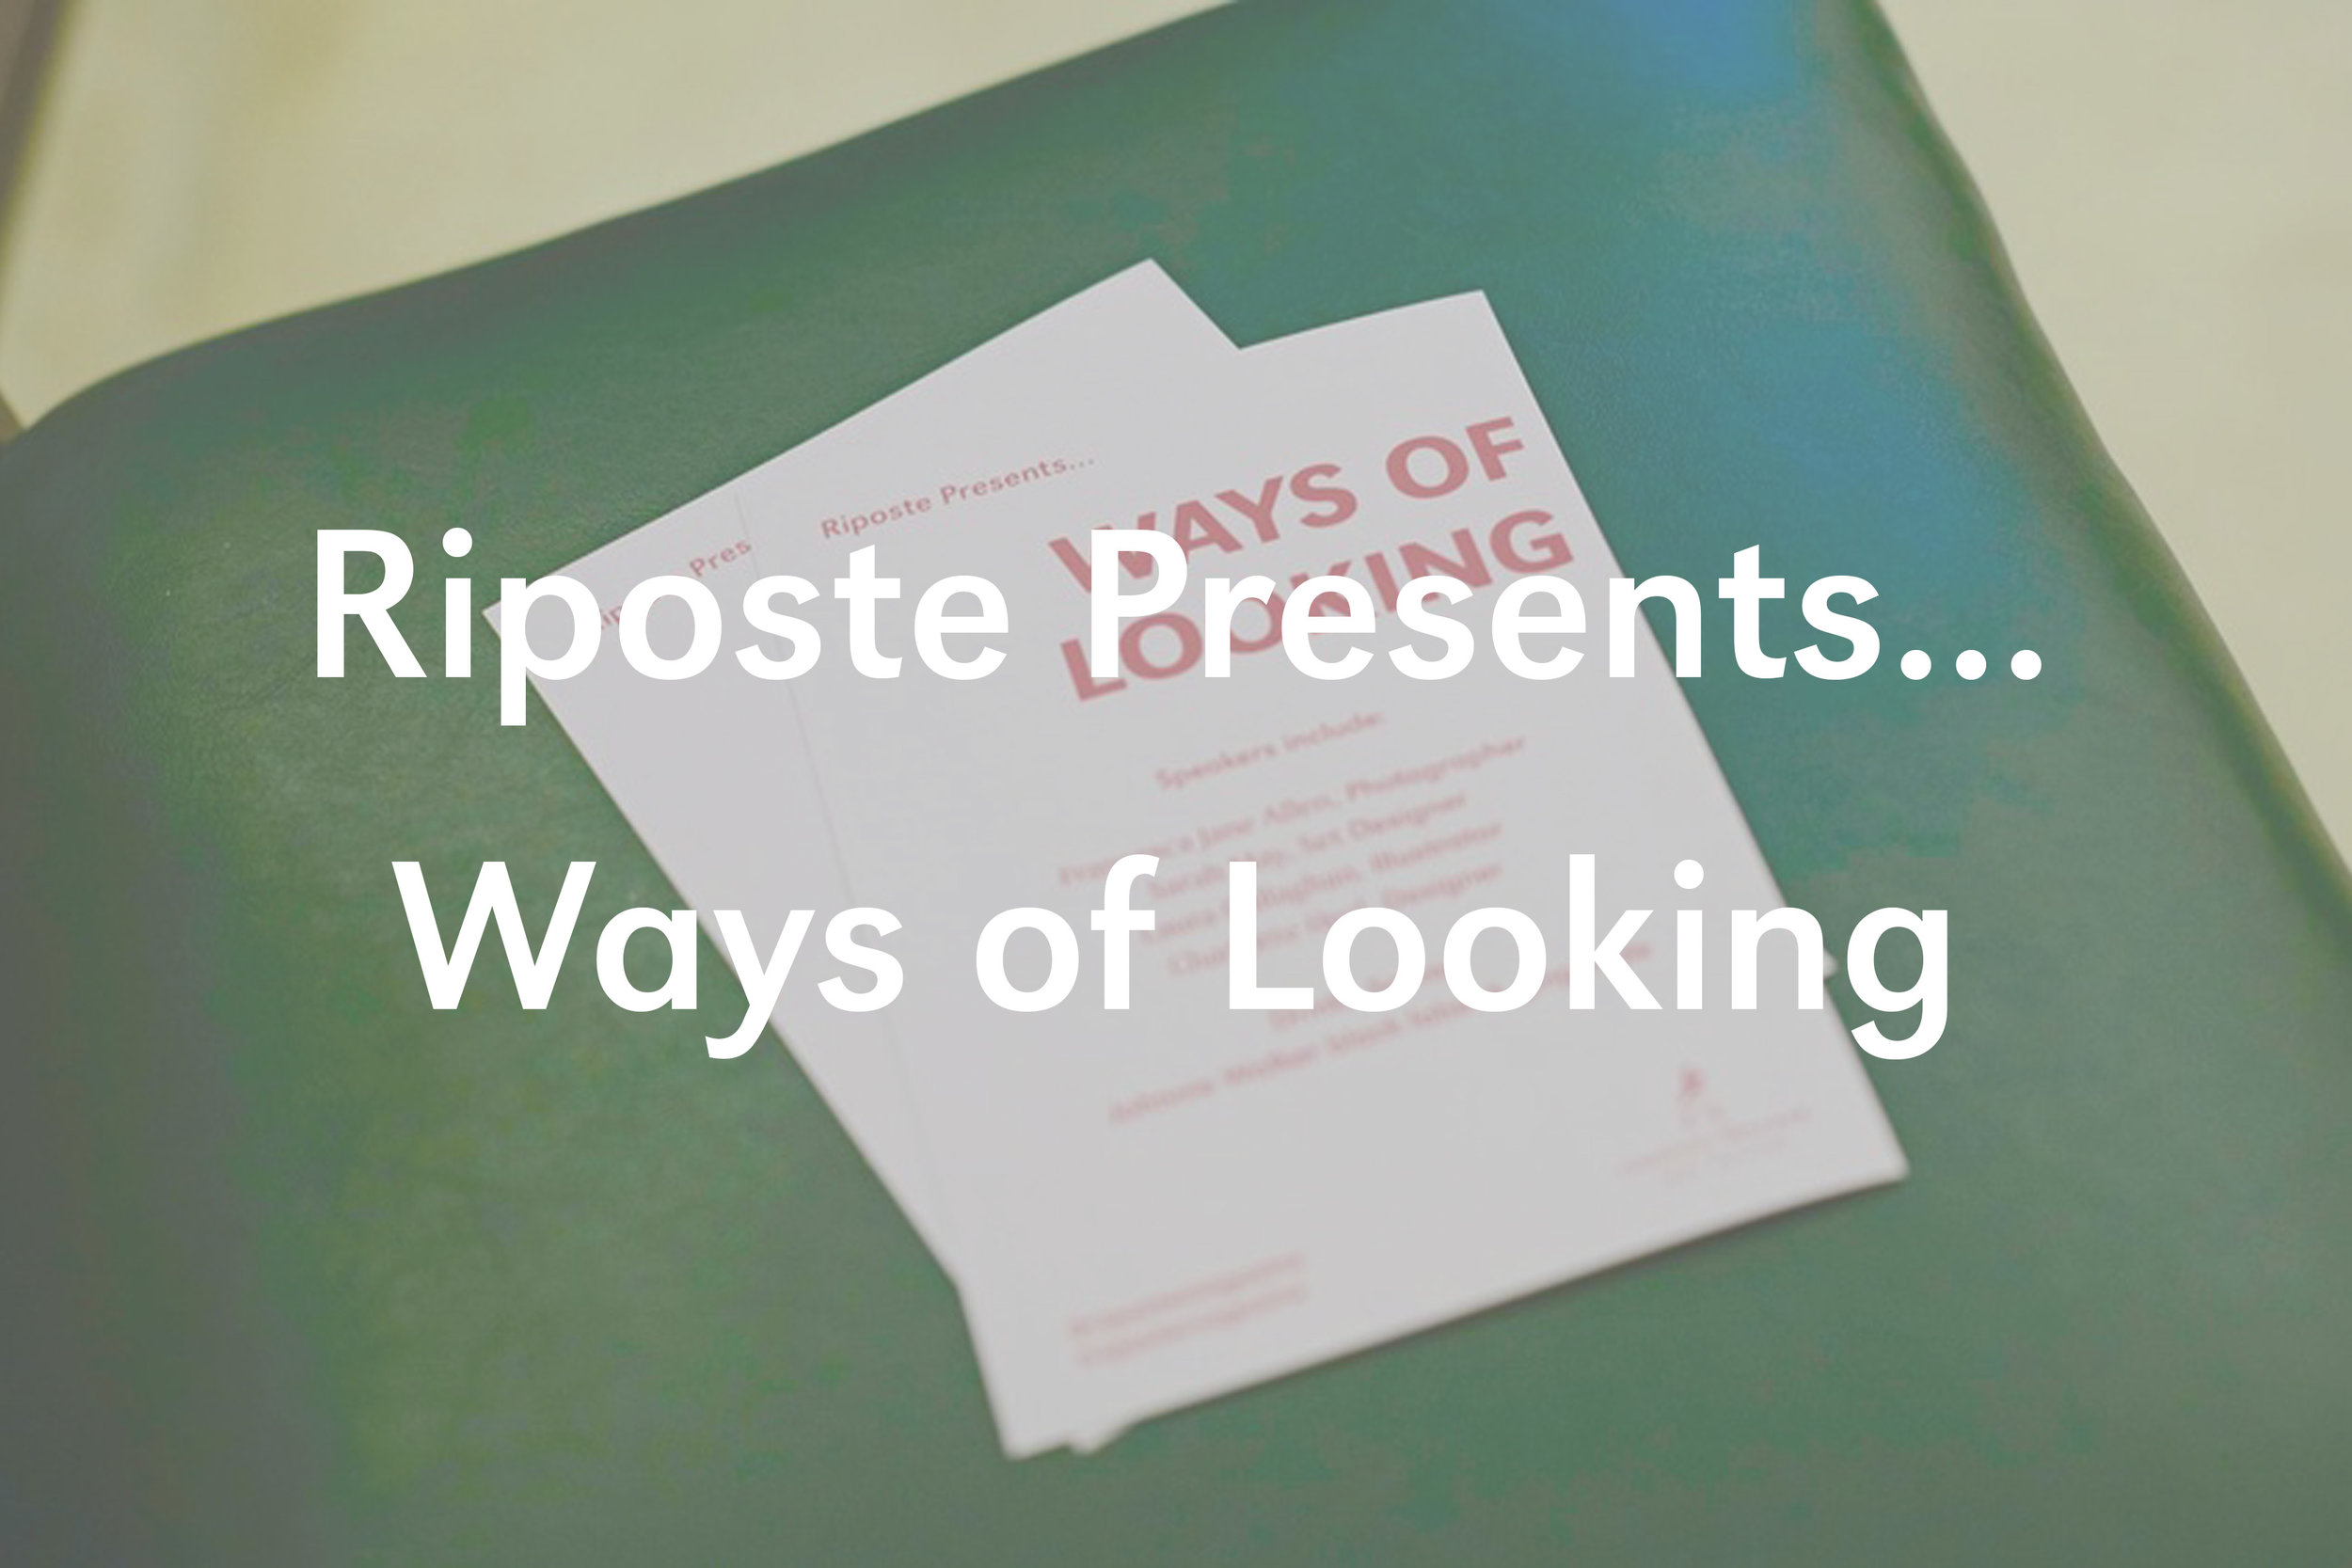 Riposte Presents... Ways of Looking